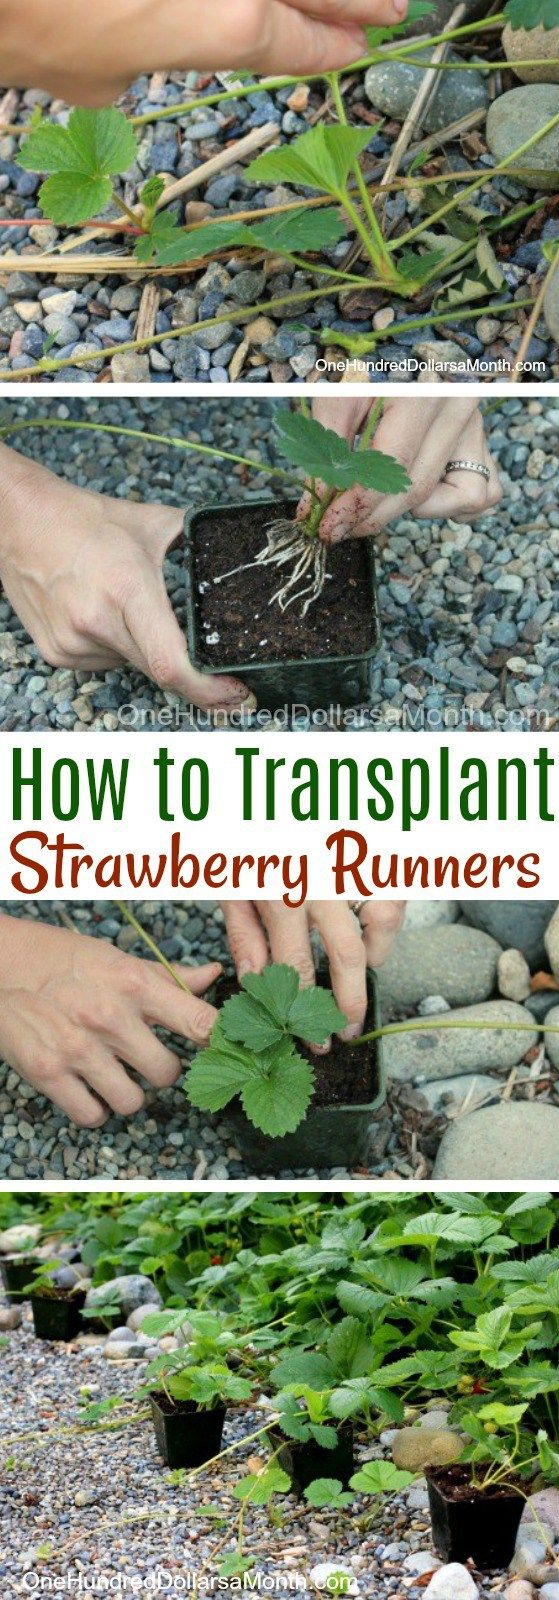 Transplanting Strawberry Runners - One Hundred Dollars a Mont, How to Transplant Strawberry Runners, Strawberry Runners